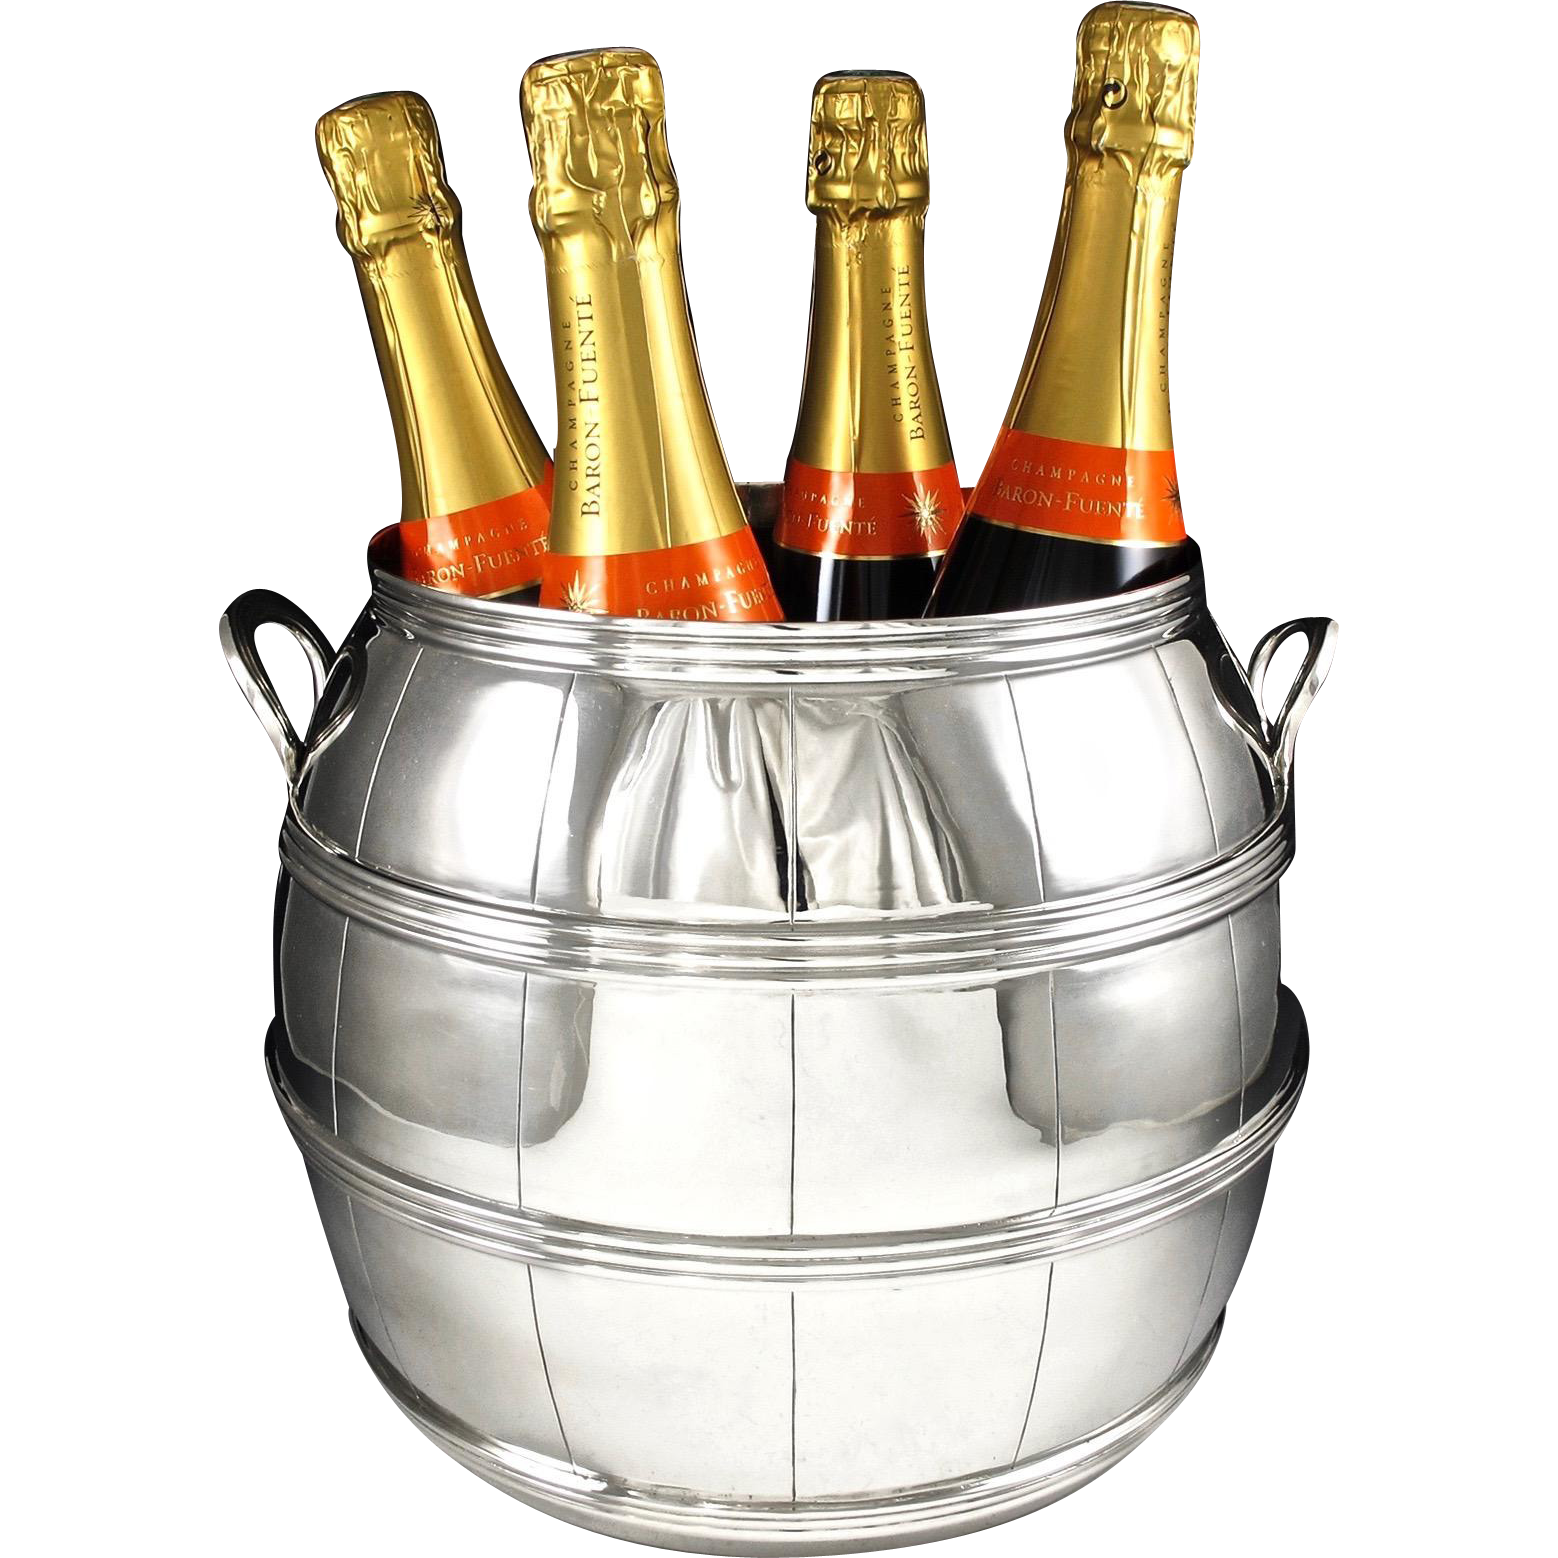 LALE : Spectacular Sterling Silver Wine Barrel Form Champagne Cooler 3315 grams - Provenance Alberto PINTO